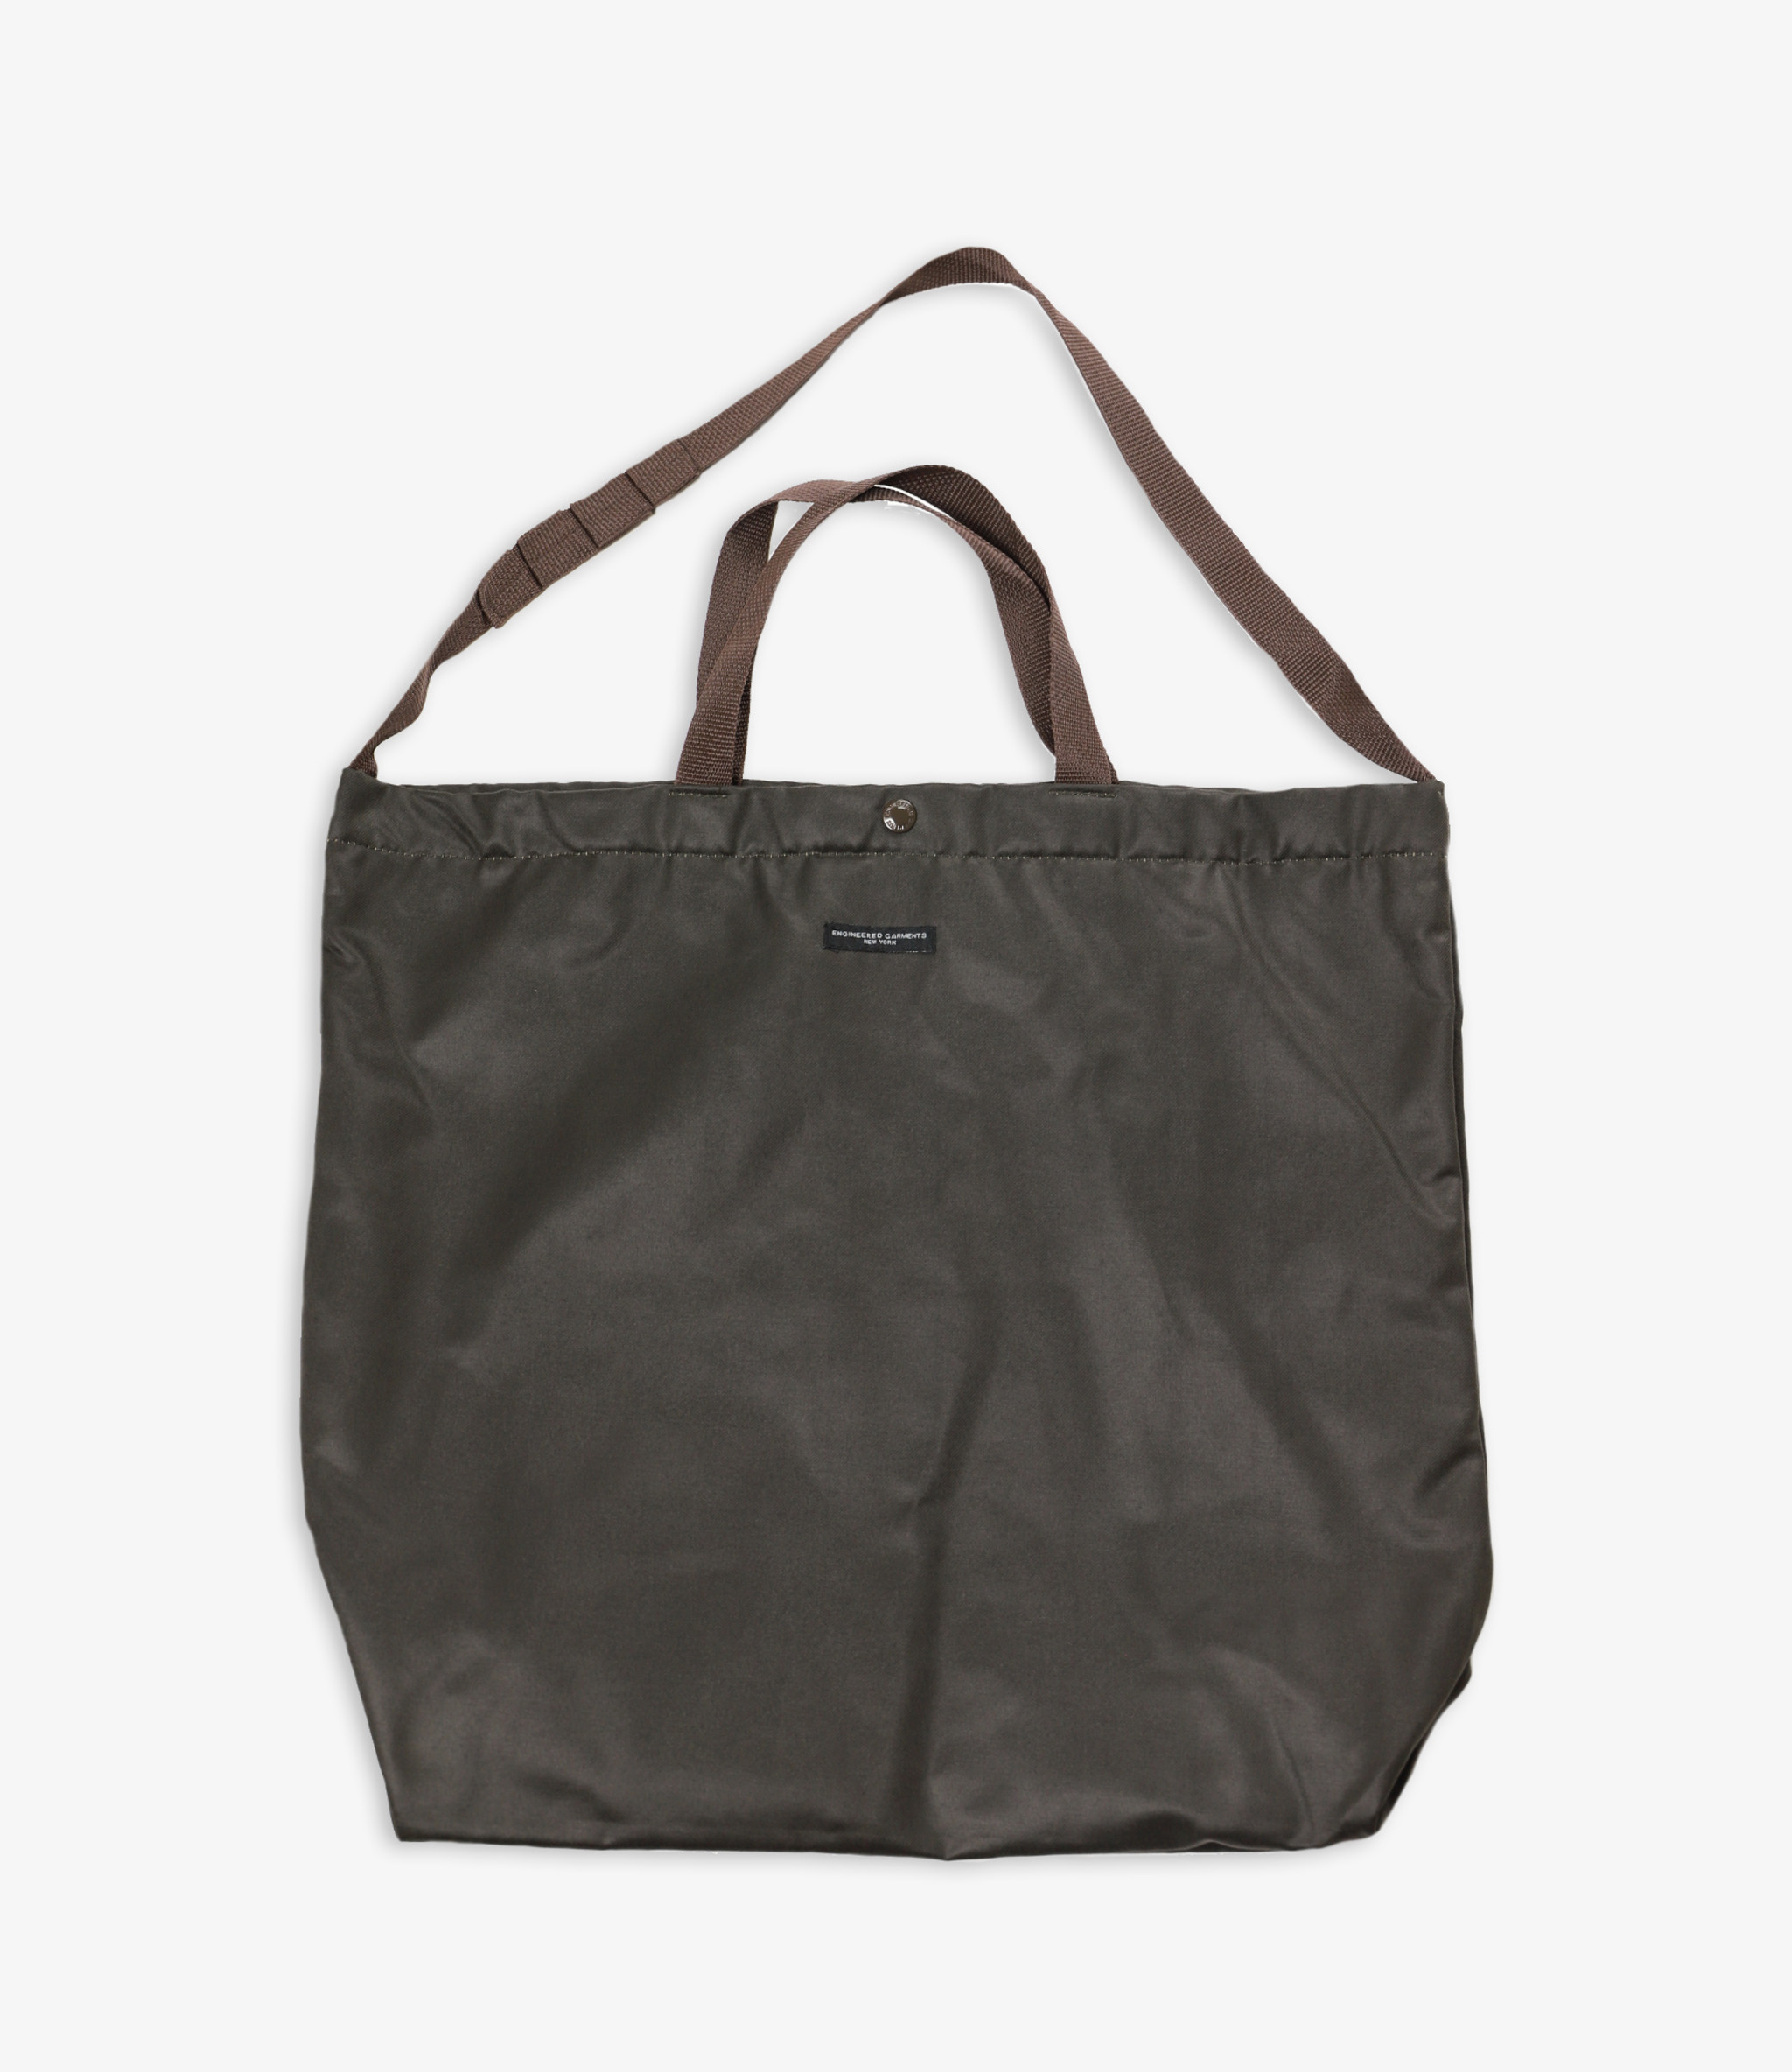 Engineered Garments Carry All Tote - Dk.Olive Coated Twill